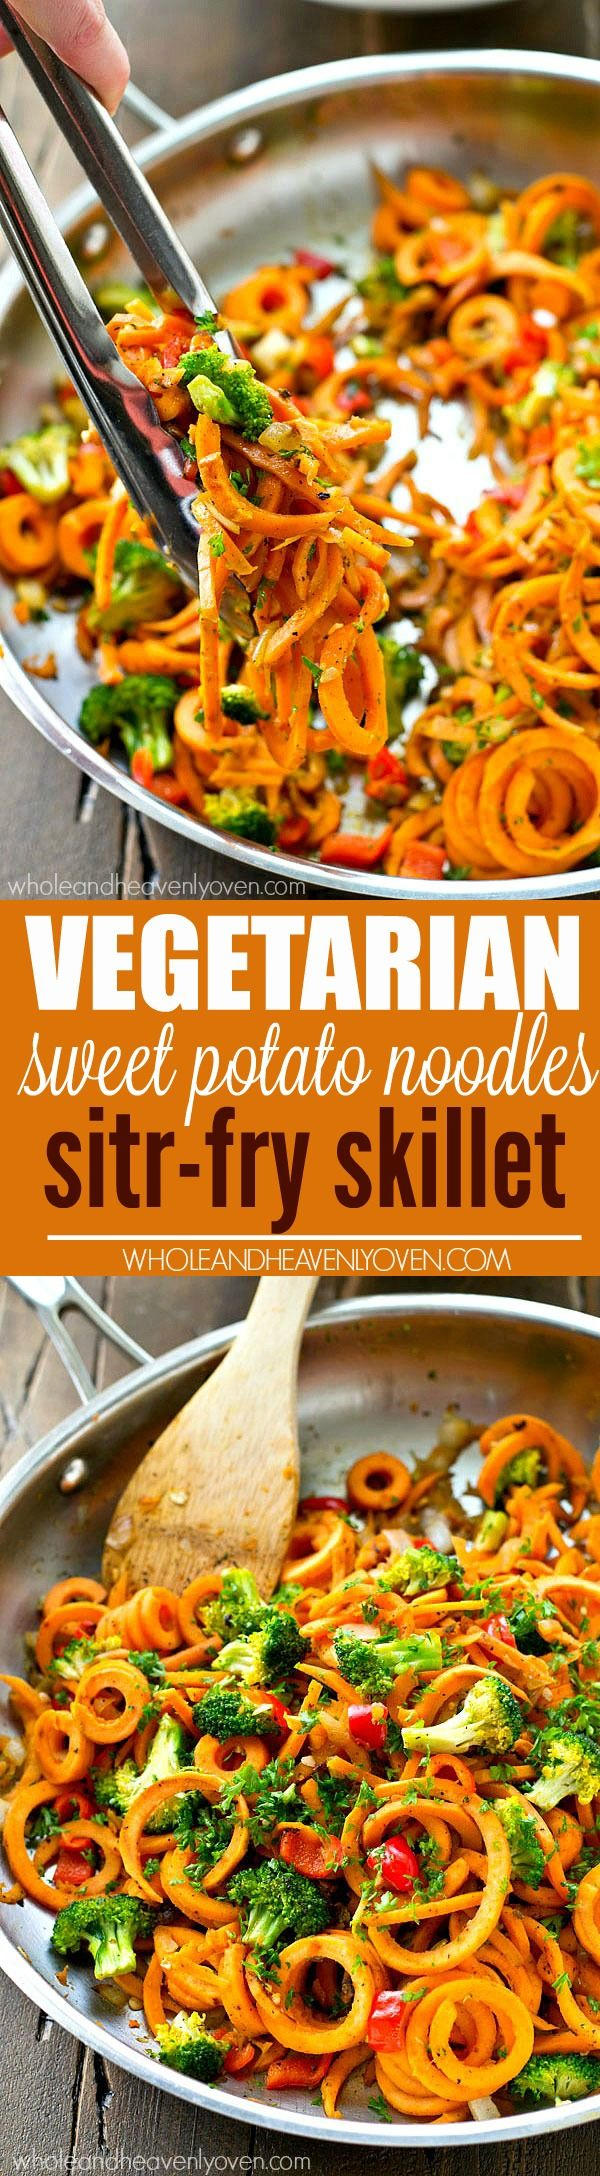 157 best spiralize plant based dishes images on pinterest vegan kicked up sweet potato noodles stir fry style with lots of veggies a super easy dinner ready in 20 minutes with only 7 ingredients forumfinder Images